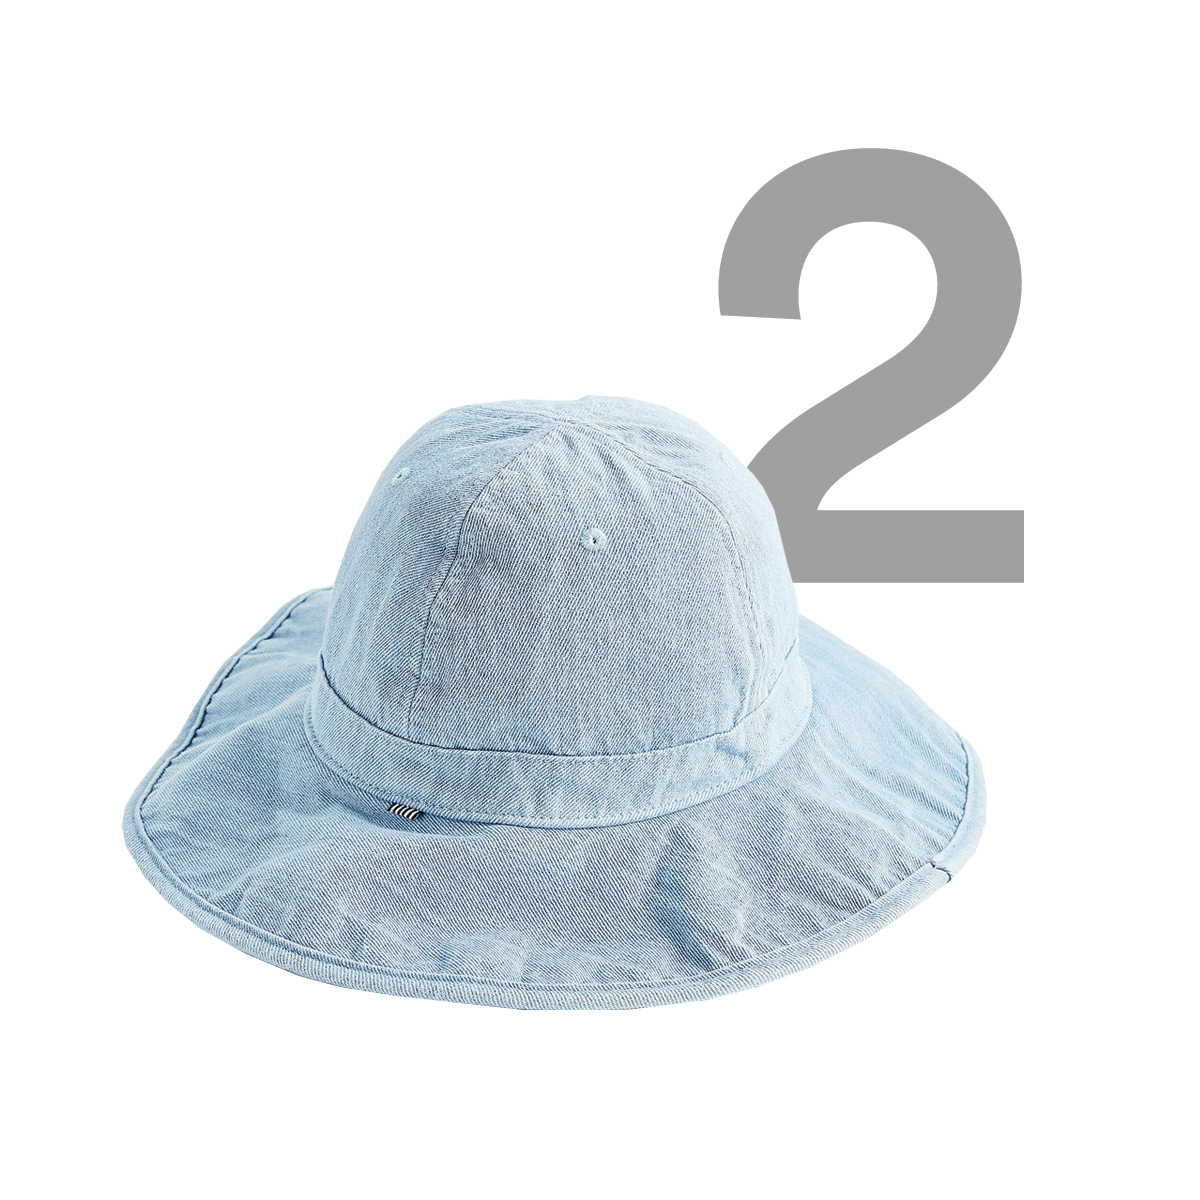 HERSCHEL SUPPLY CO. Rambler Denim Bucket Hat, available at Urban Outfitters